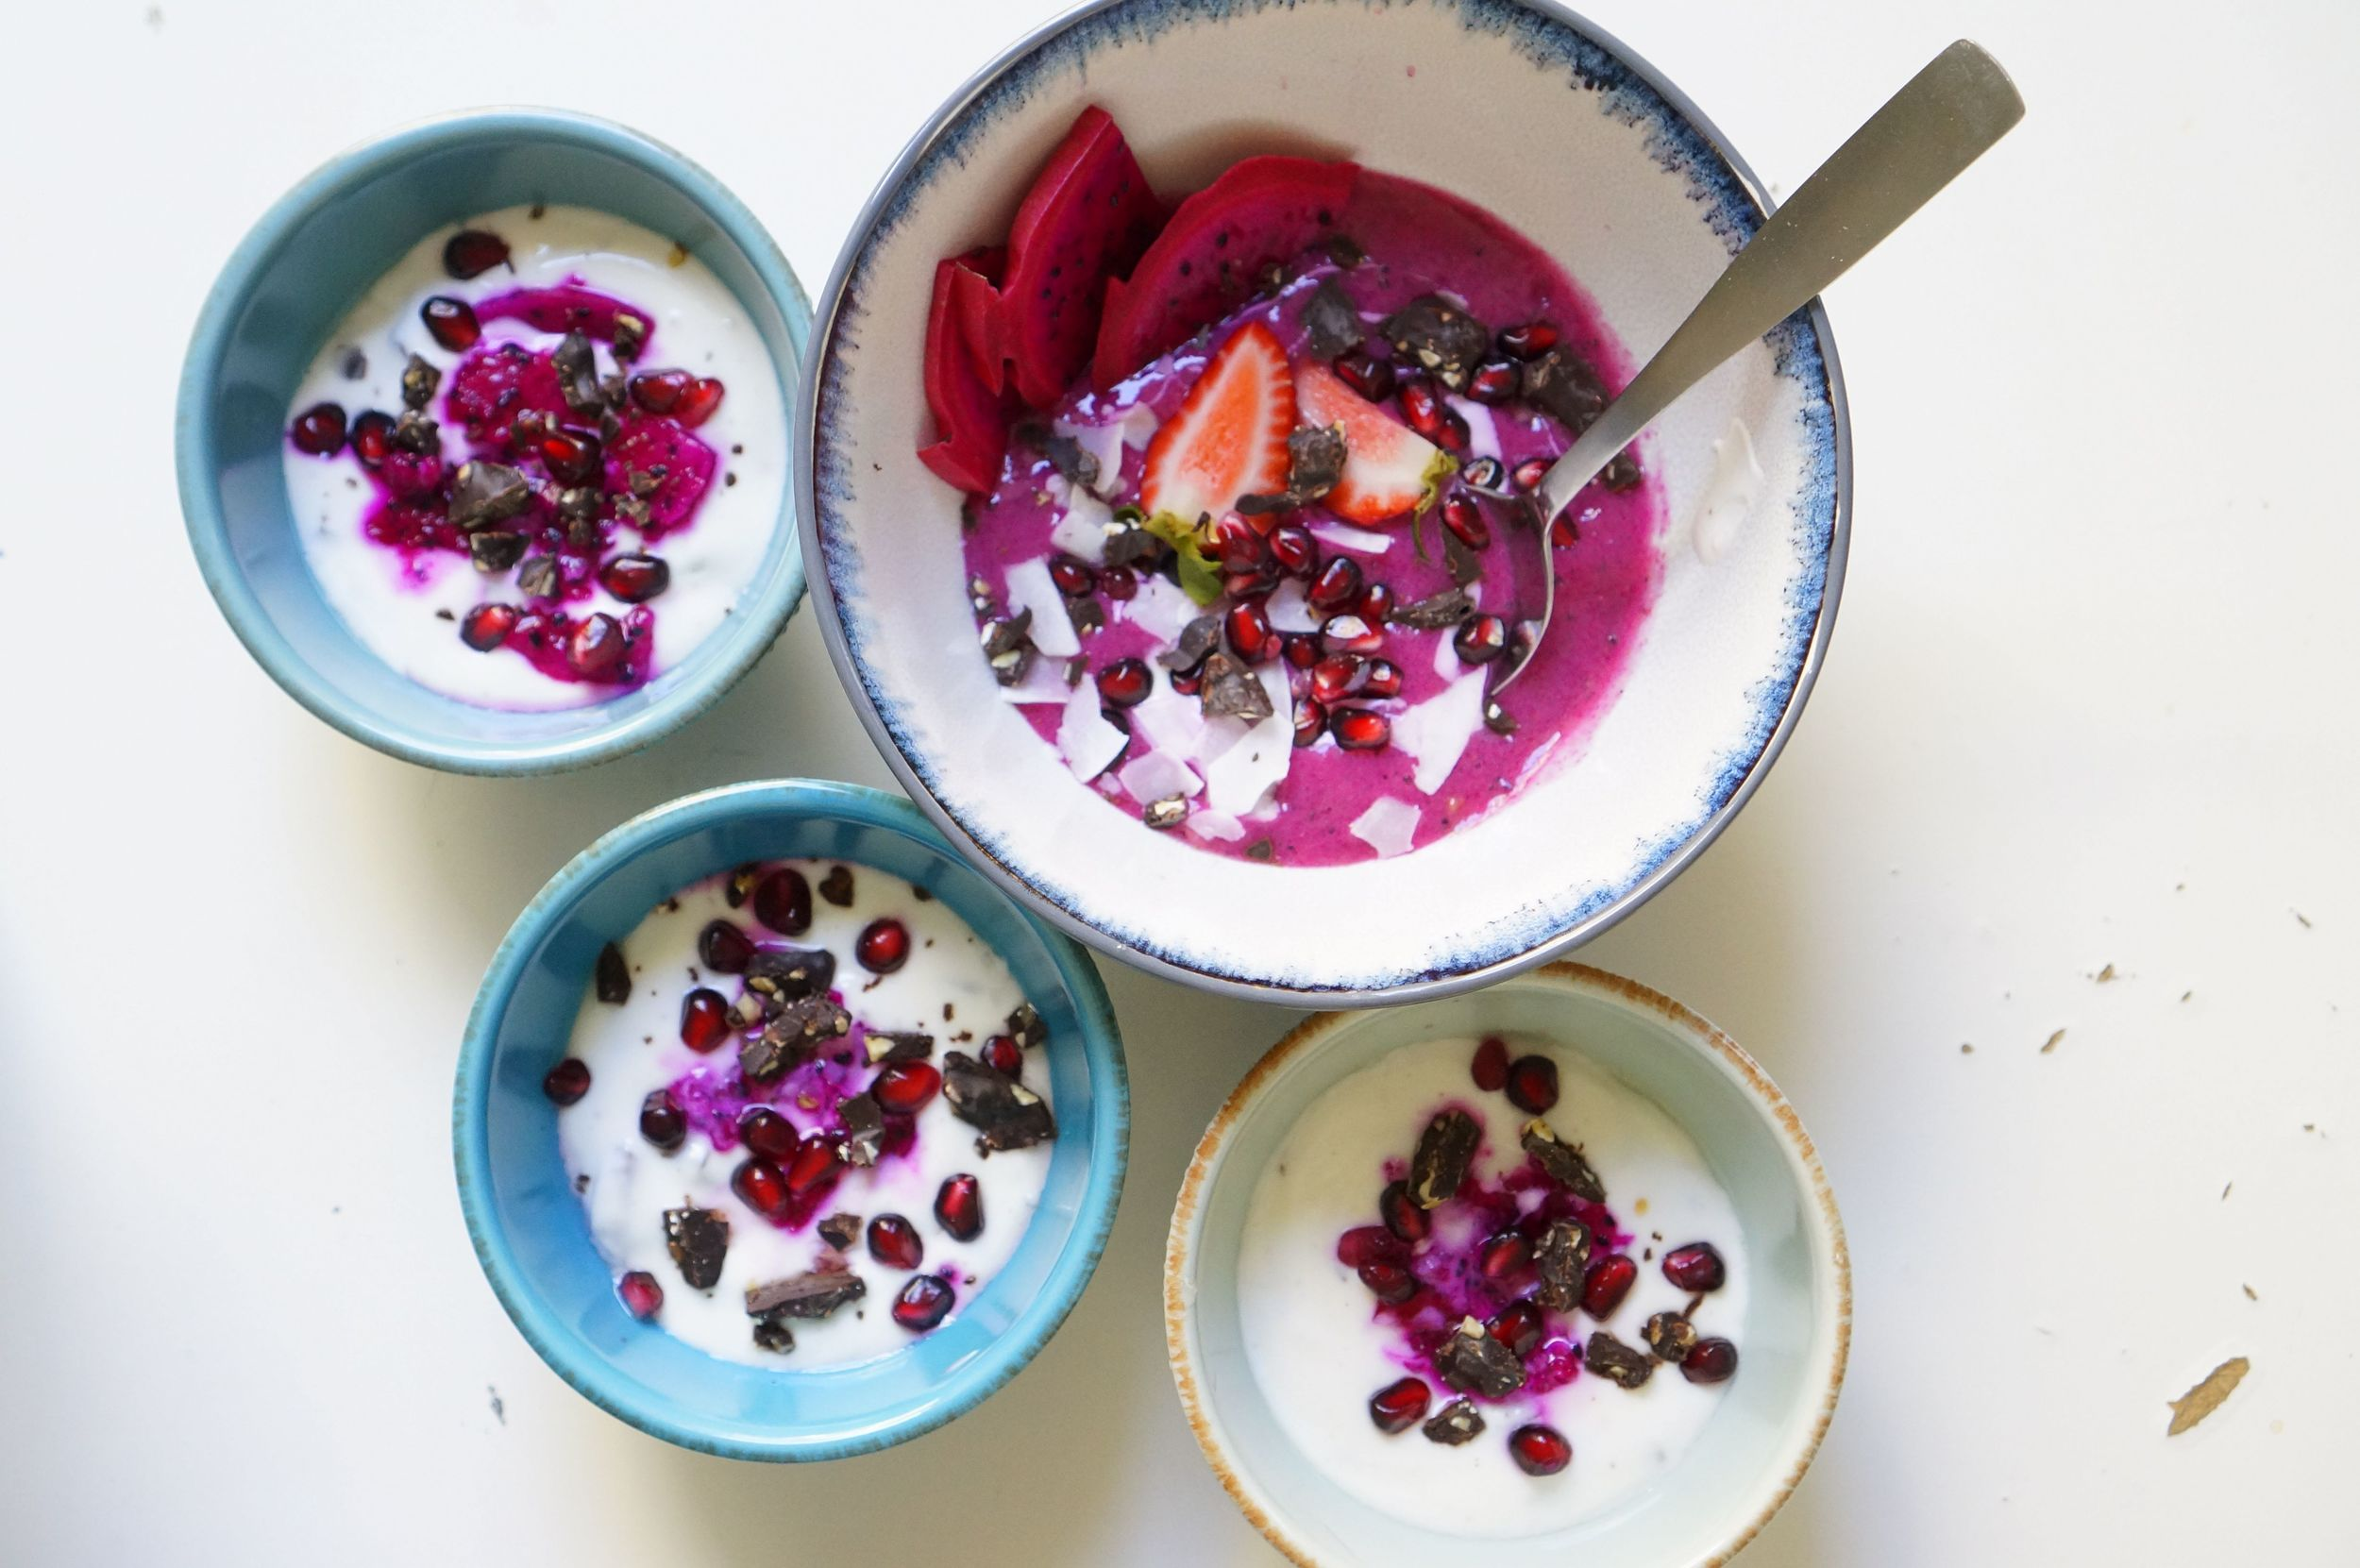 Strawberry and pitaya smoothie bowl1.jpg